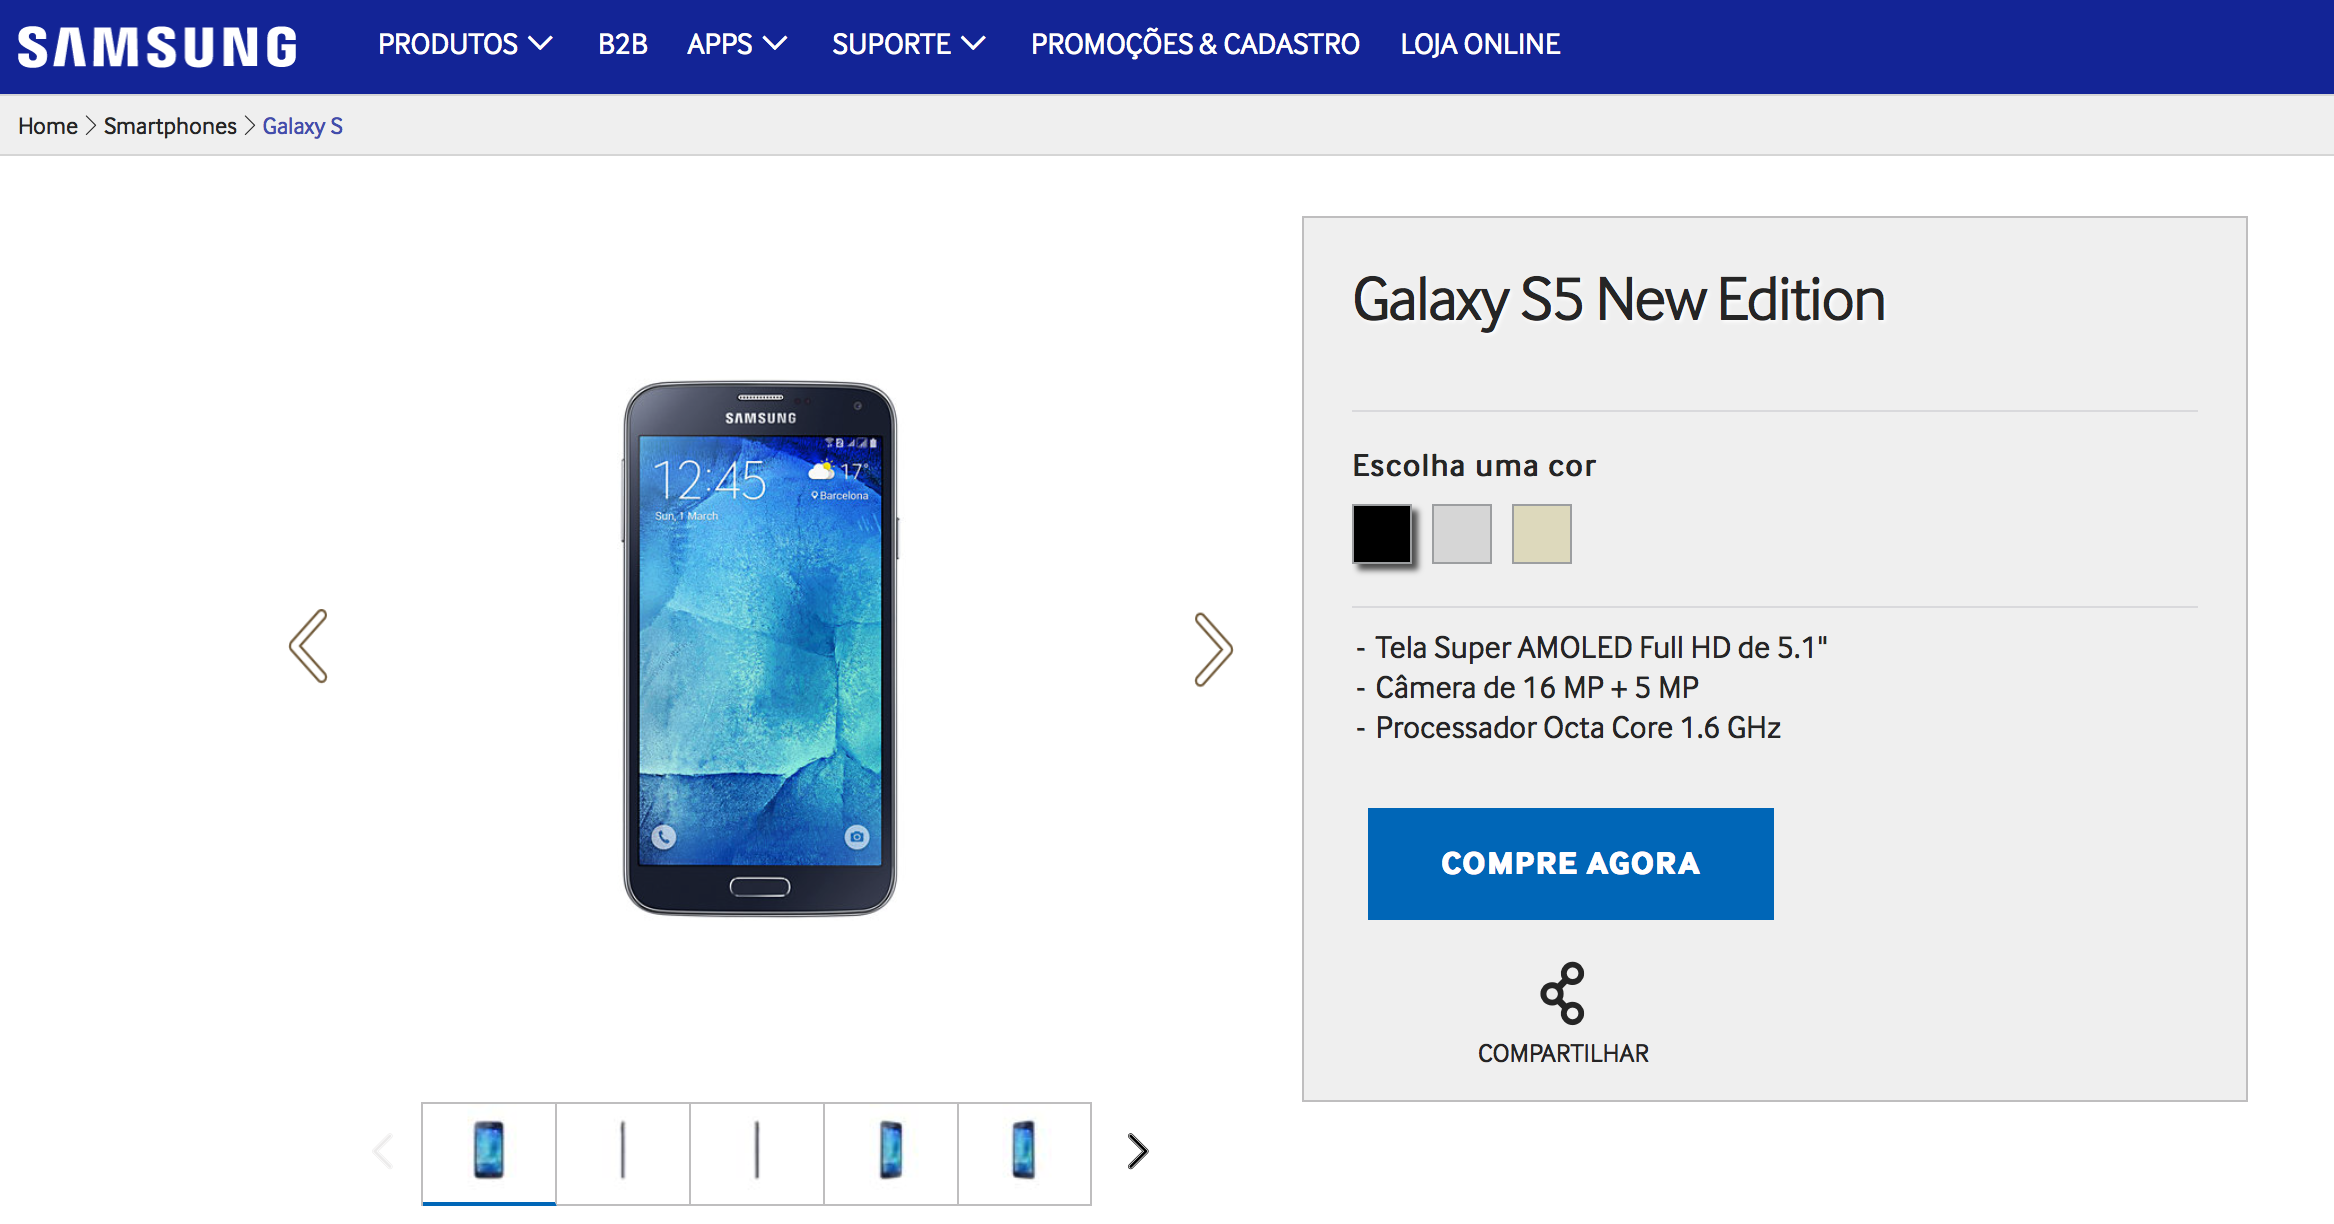 Samsung Galaxy S5 New Edition Launched In Brazil Is A Rebranded Galaxy